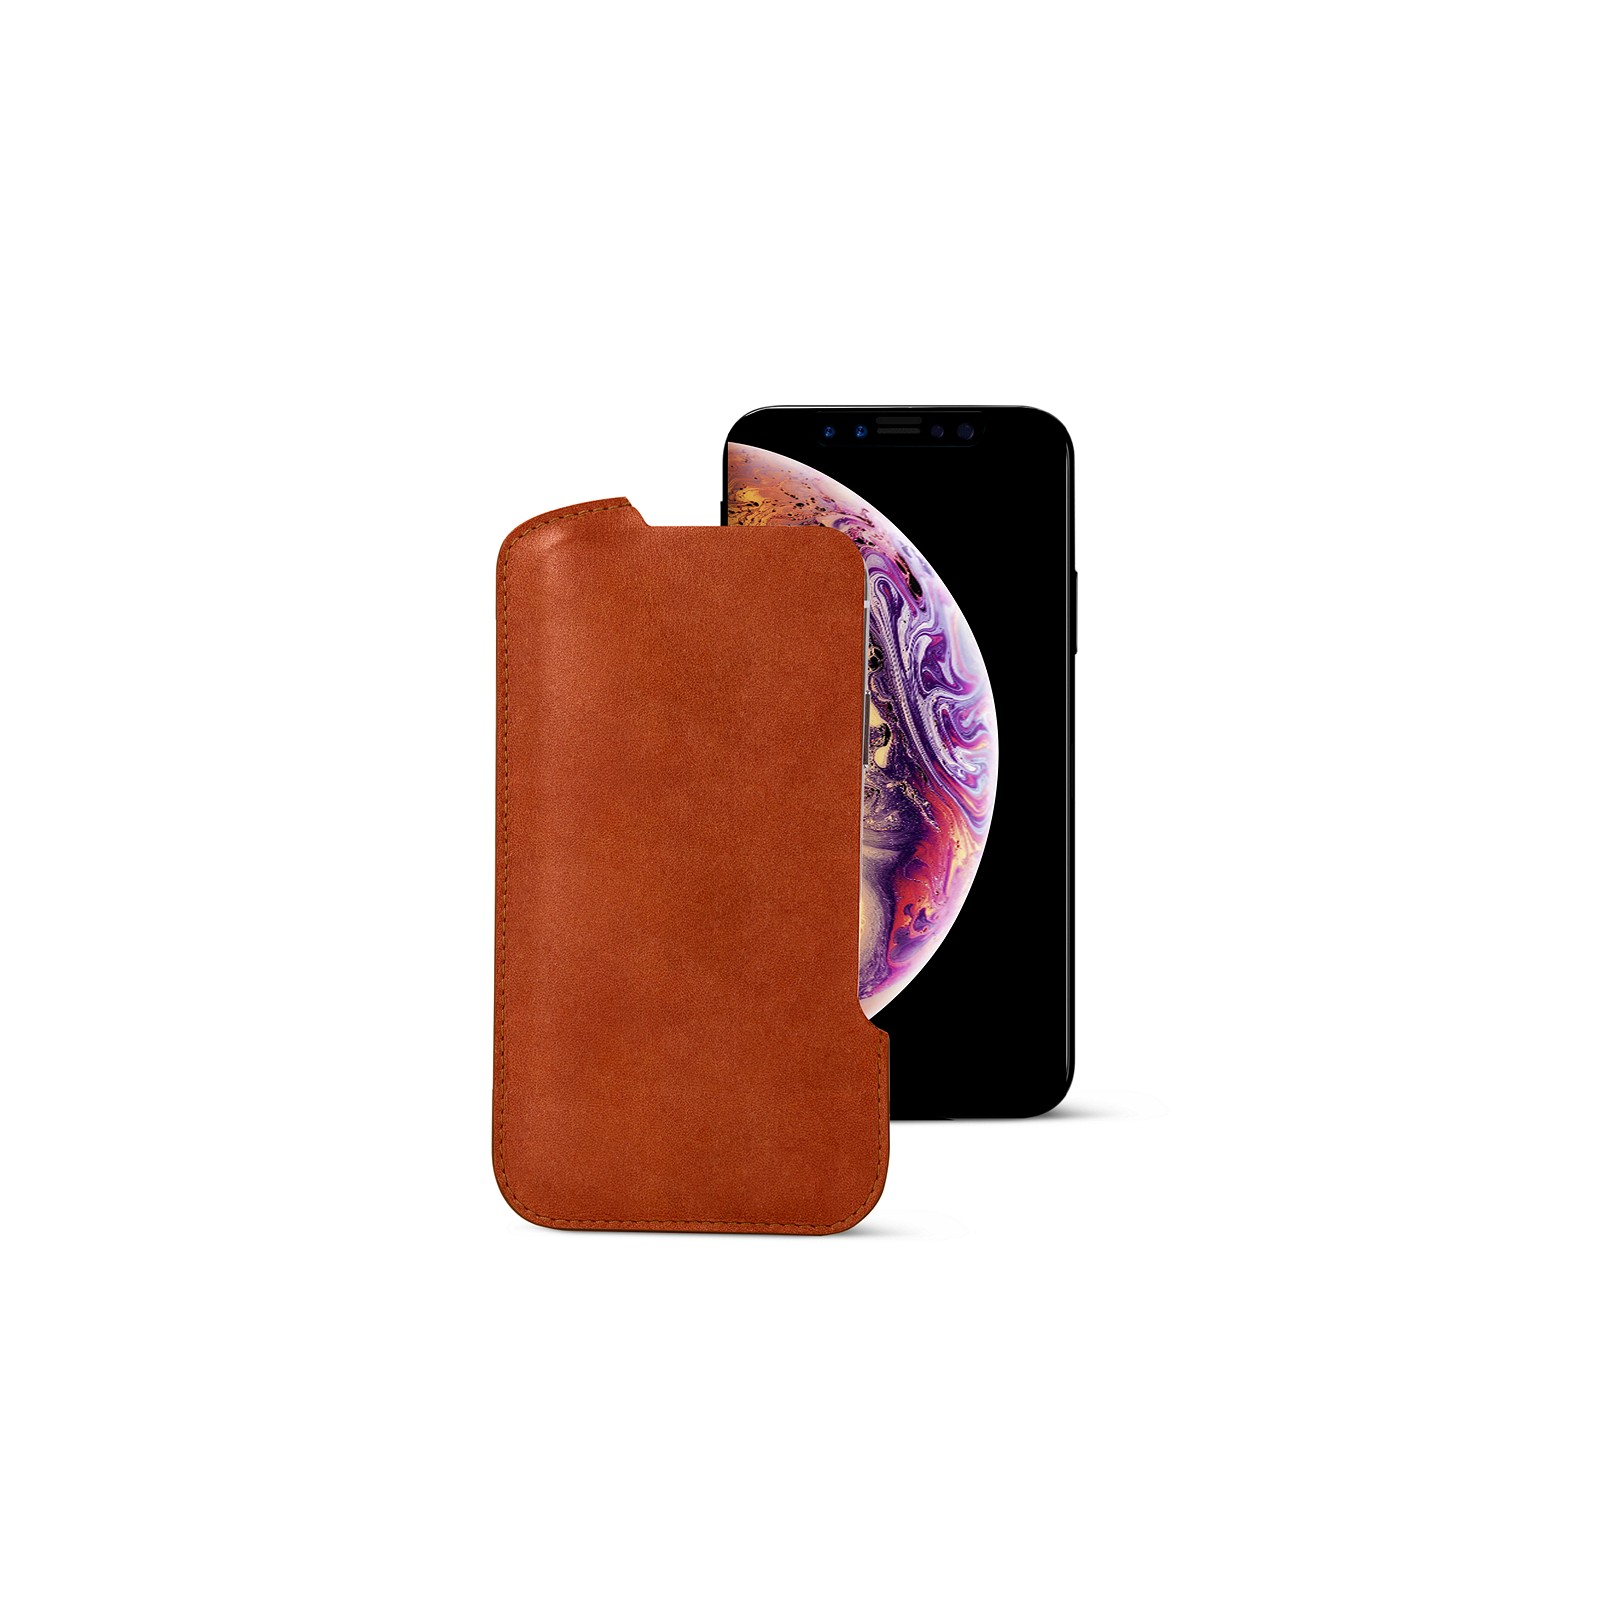 sale retailer bfb0d 935b3 iPhone XS Pouch